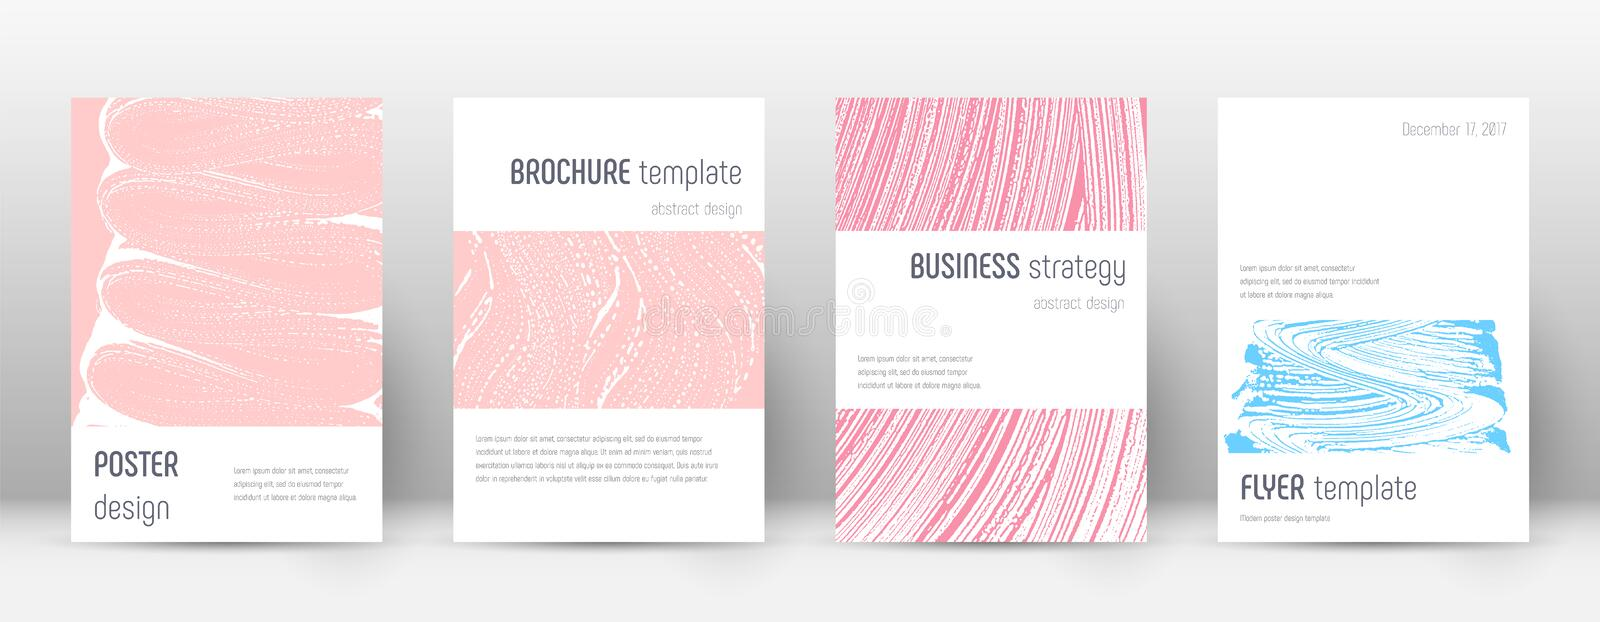 Cover page design template. Minimalistic brochure. Layout. Classy trendy abstract cover page. Pink and blue grunge texture background. Pleasing poster stock illustration